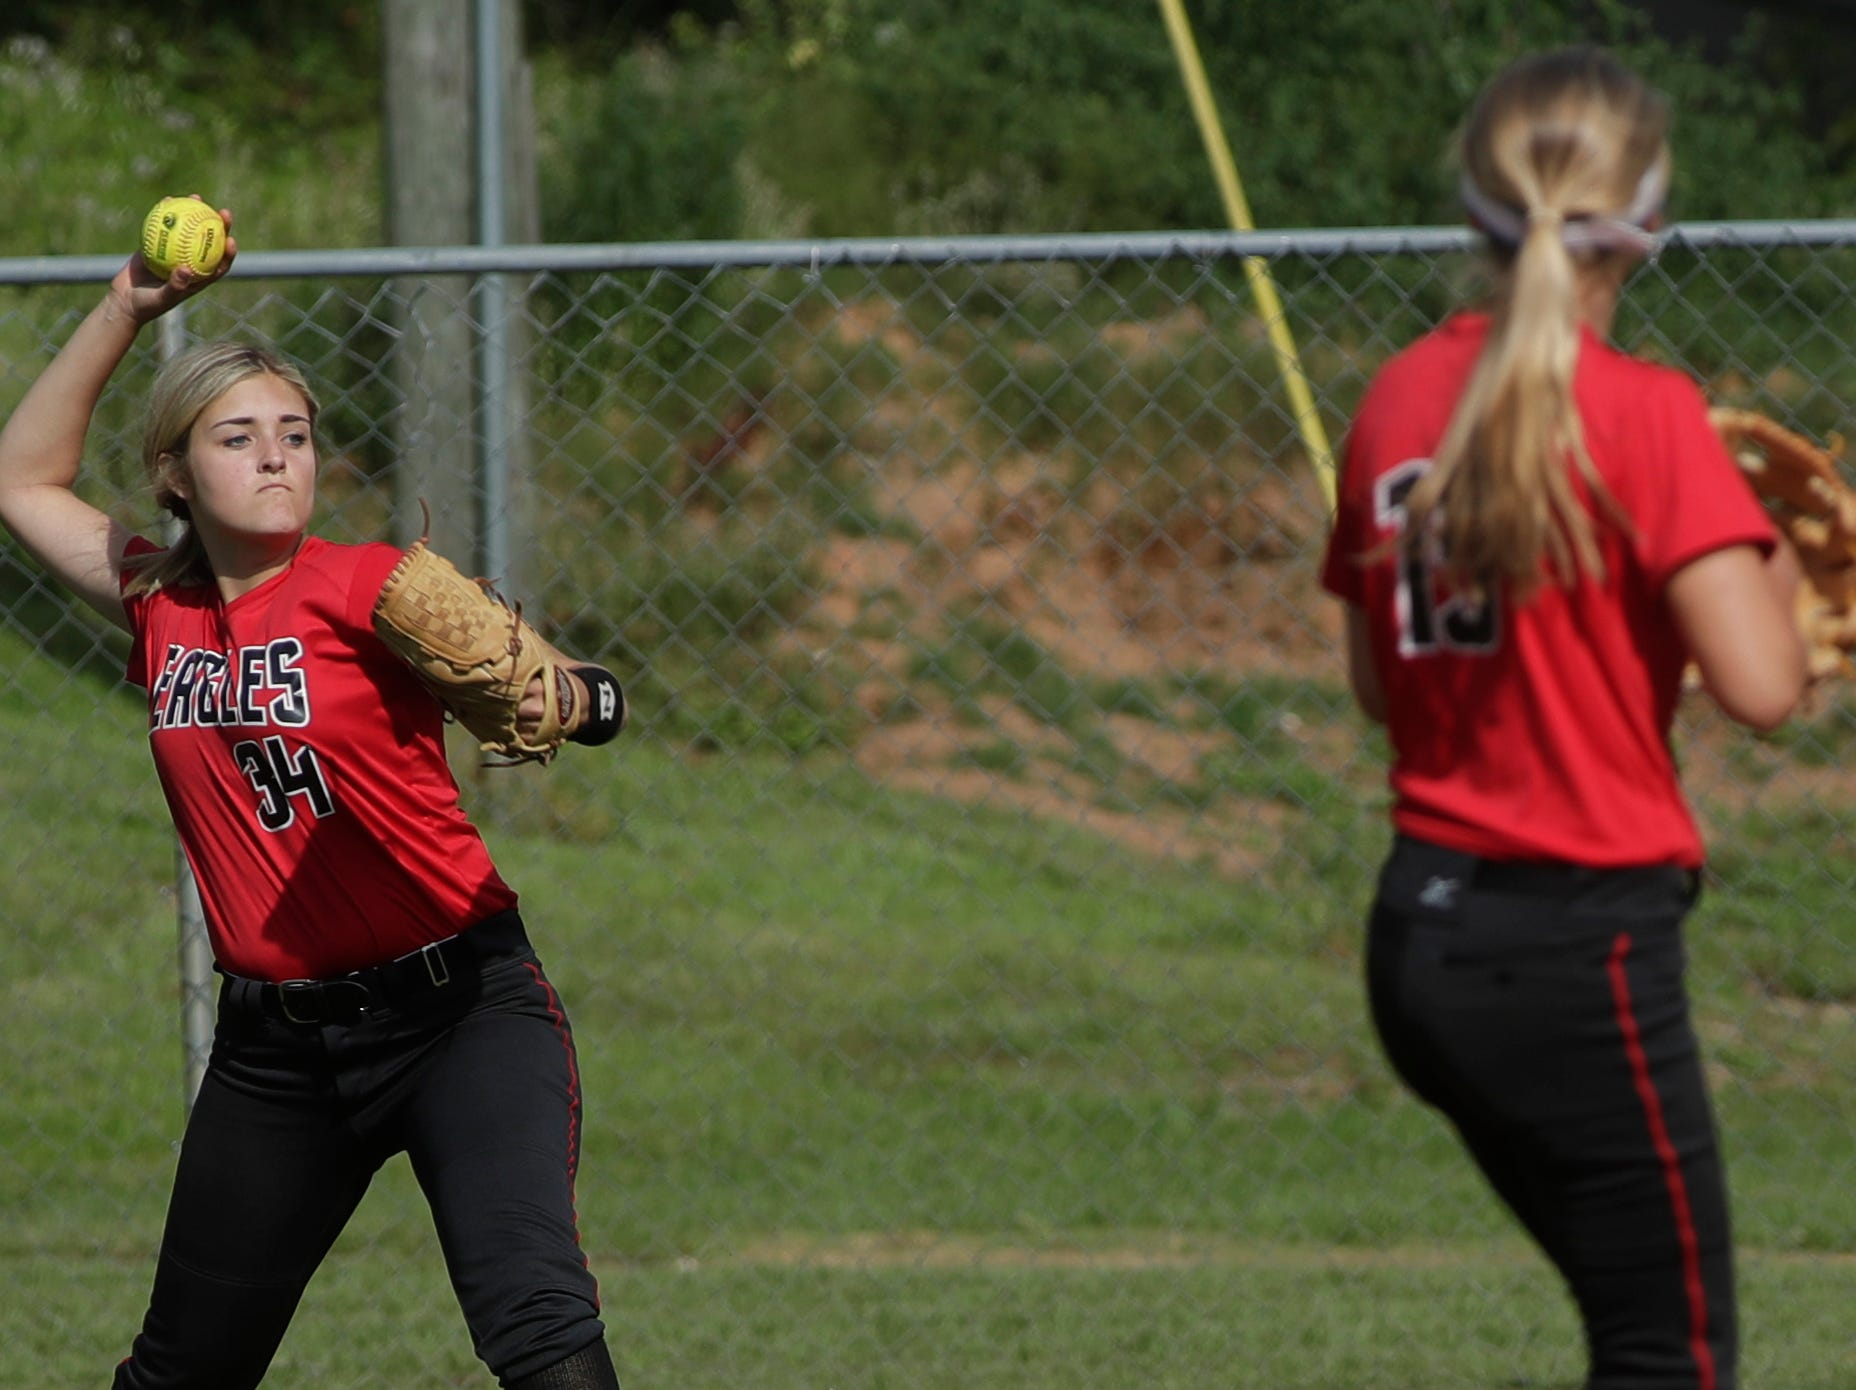 North Florida Christian's Ramsey Shiver (34) throws the ball during the 1-3A regional final game between NFC and University Christian at NFC Tuesday, May 14, 2019. UC defeated NFC 16 to 11 to advance to the state tournament.